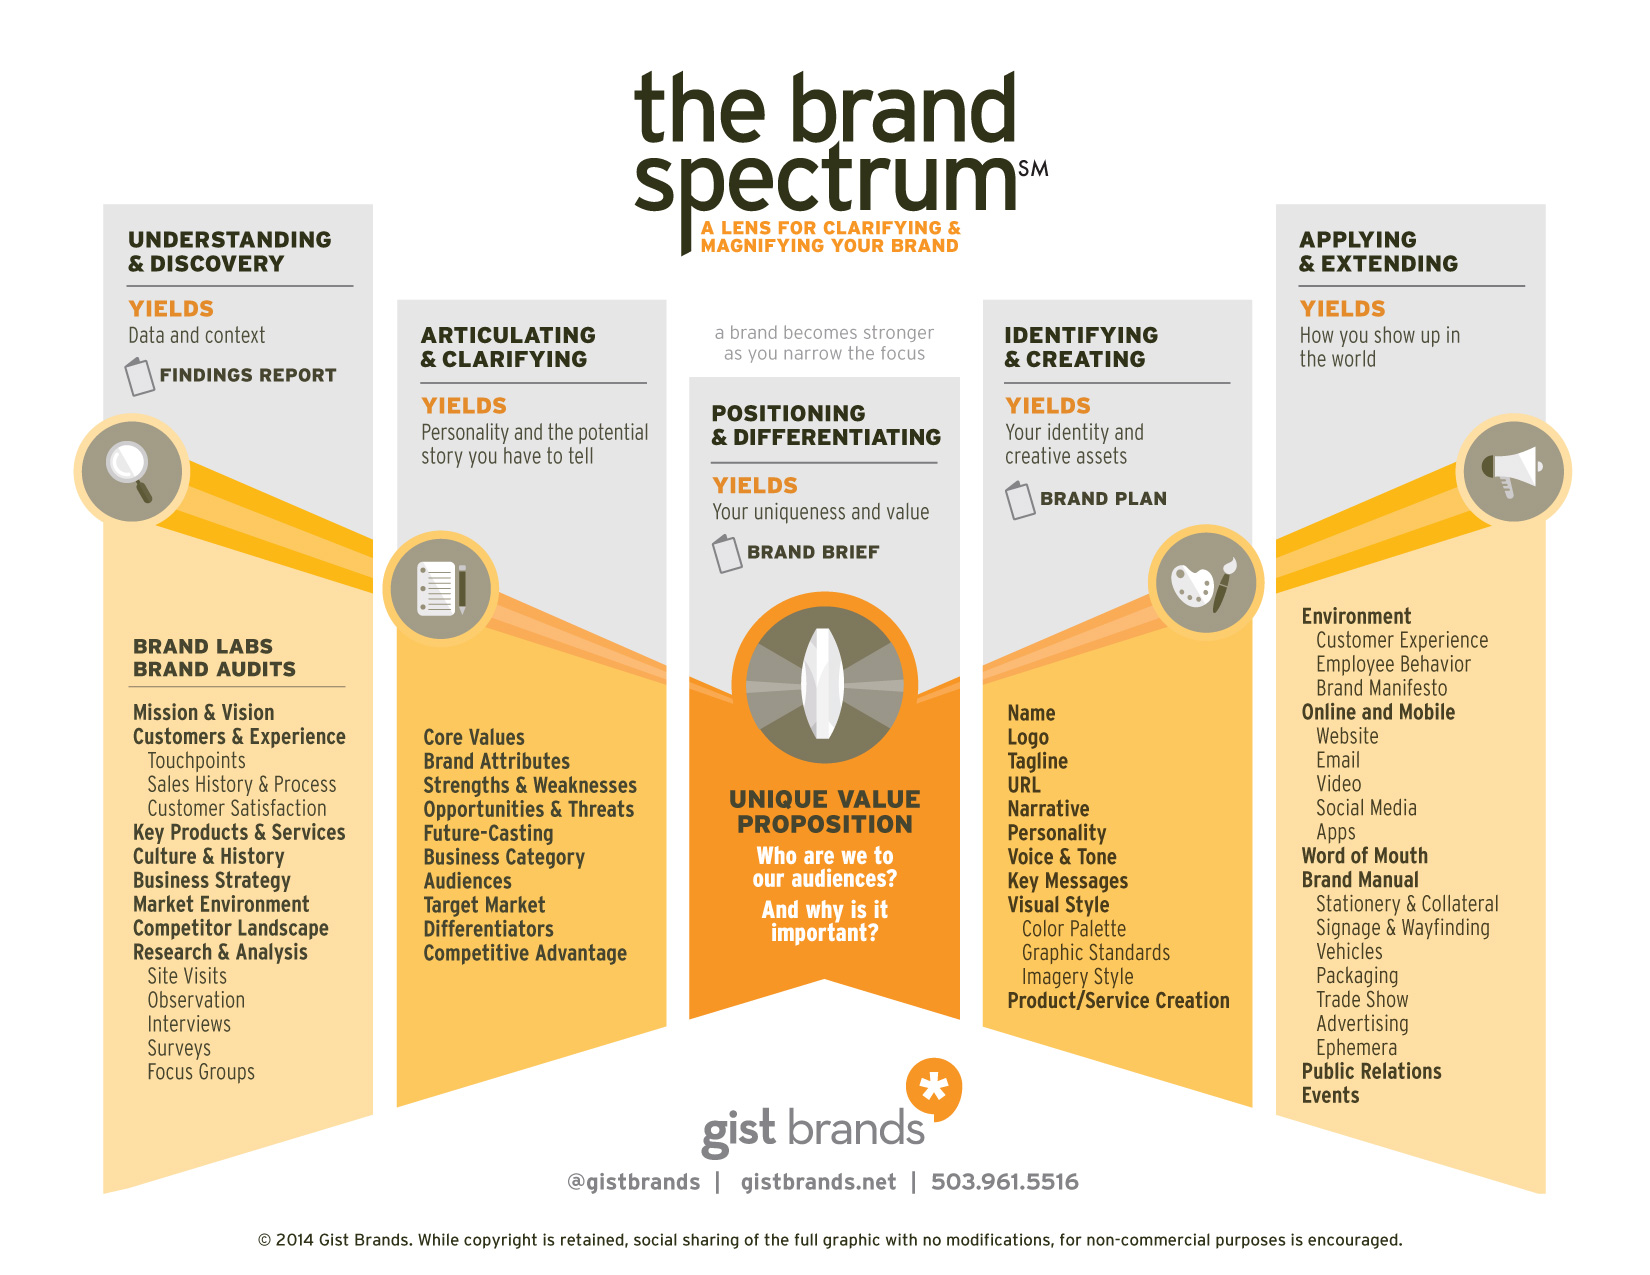 The Brand Spectrum - A Basic Guide to Branding: The Brand Evolution Process